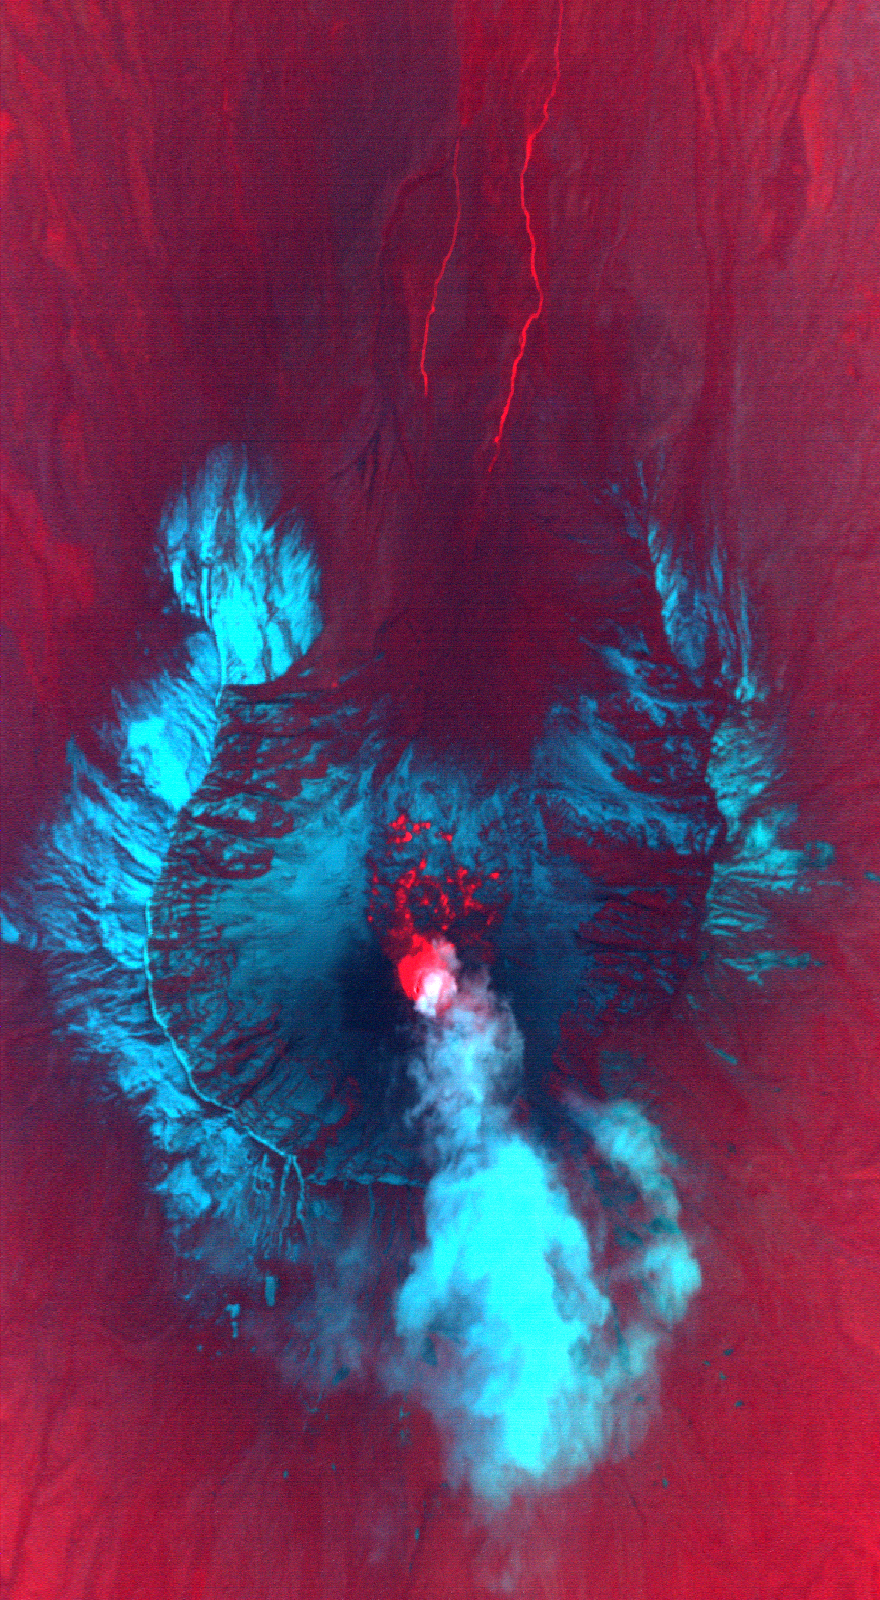 Hot lava had broken through the surface of the growing lava dome on Mount St. Helens when the MASTER sensor took this image in the early morning hours of October 13, 2004. An image composed of thermal infrared and visible light wavelengths reveals more details around the mountain. The volcanic plume is bright cyan, the cool crater is purple, and snow is light blue. To the north of the volcano, two bright red lines extend from south to north. These are warm-water streams, possibly heated by the active volcano. Image credit: Jeffrey Myers, NASA Ames Research Center